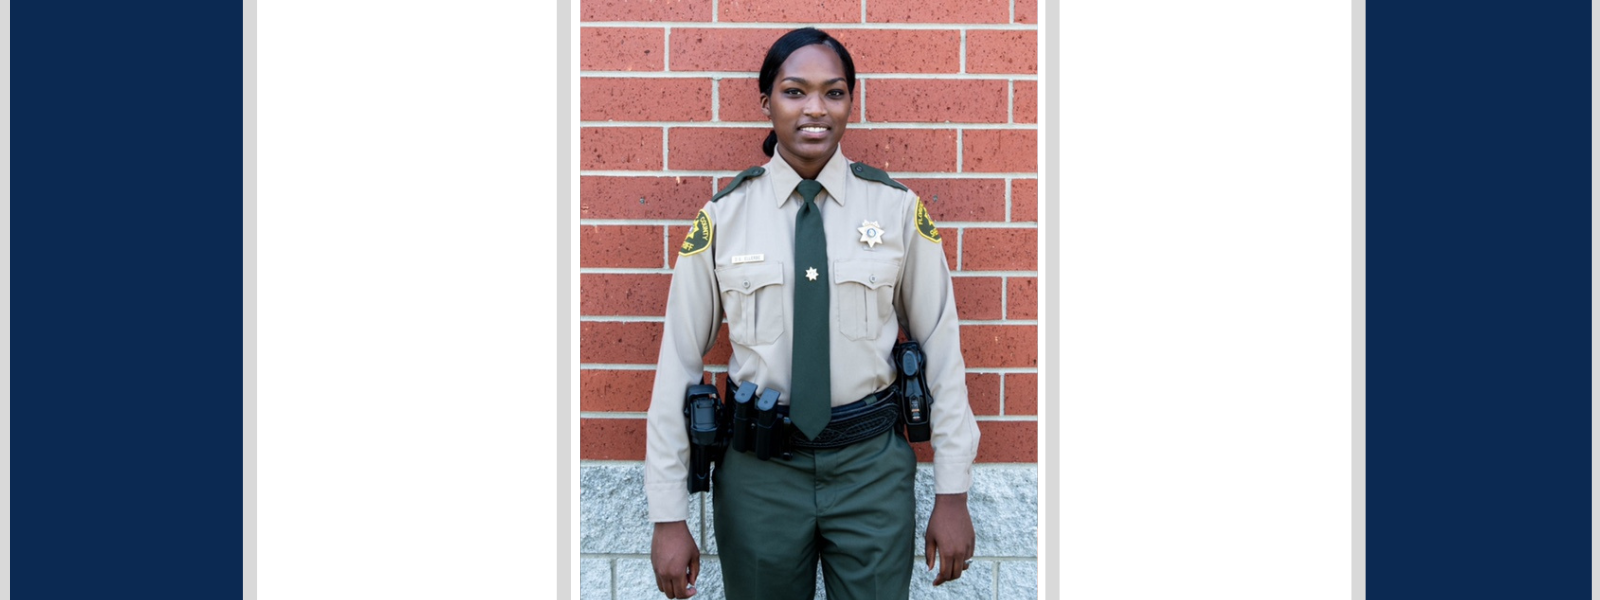 Support Deputy Ellerbe's Recovery image